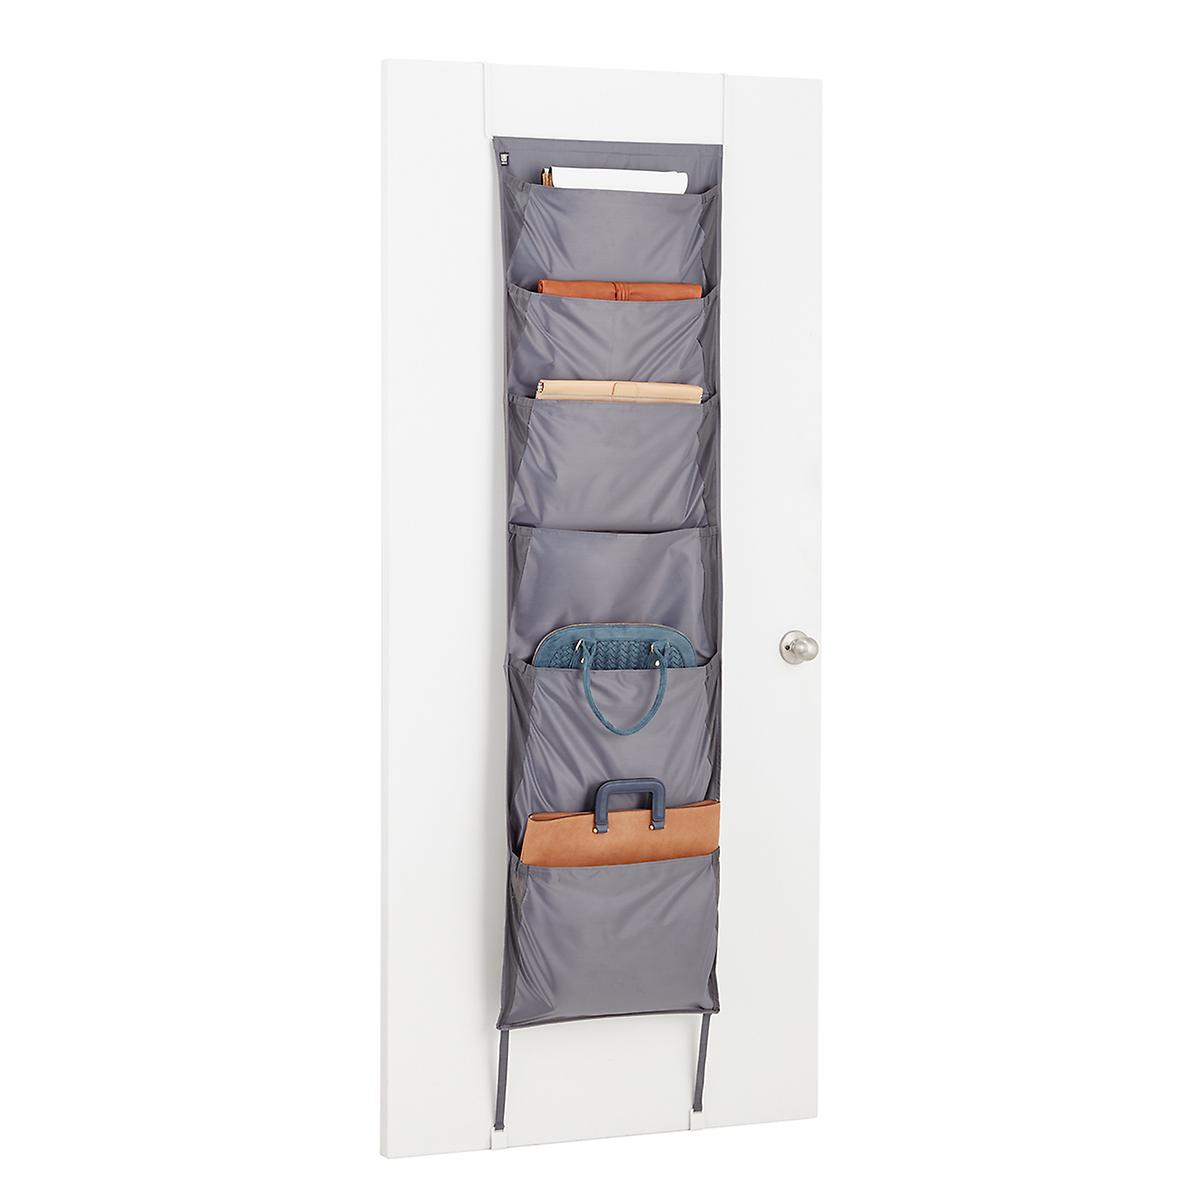 Umbra Niche Over the Door Accessory Organizer   The Container Store